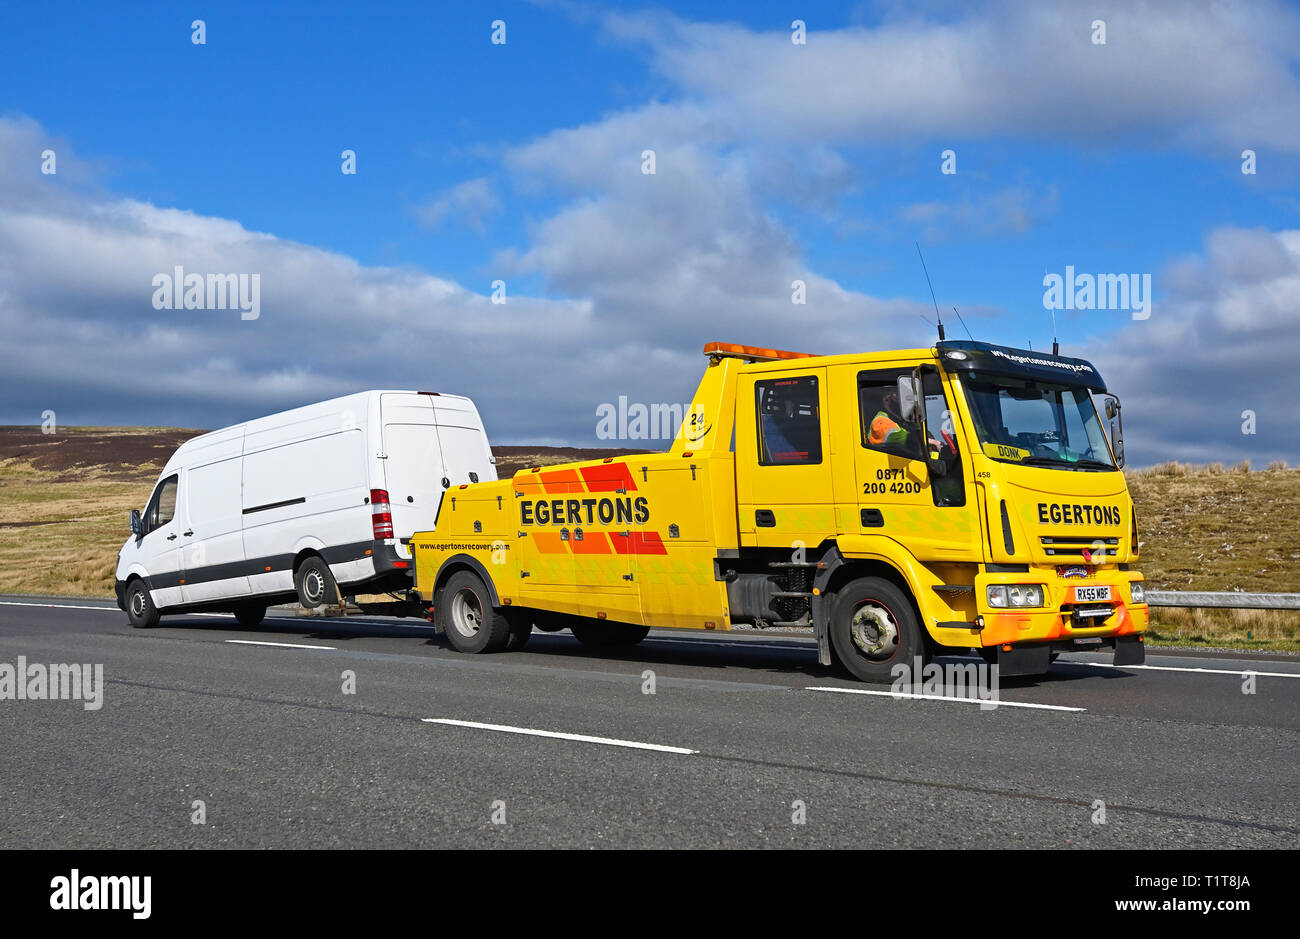 Edgertons Recovery HGV with White Van. M6 Motorway, Southbound, Shap, Cumbria, England, United Kingdom, Europe. Stock Photo